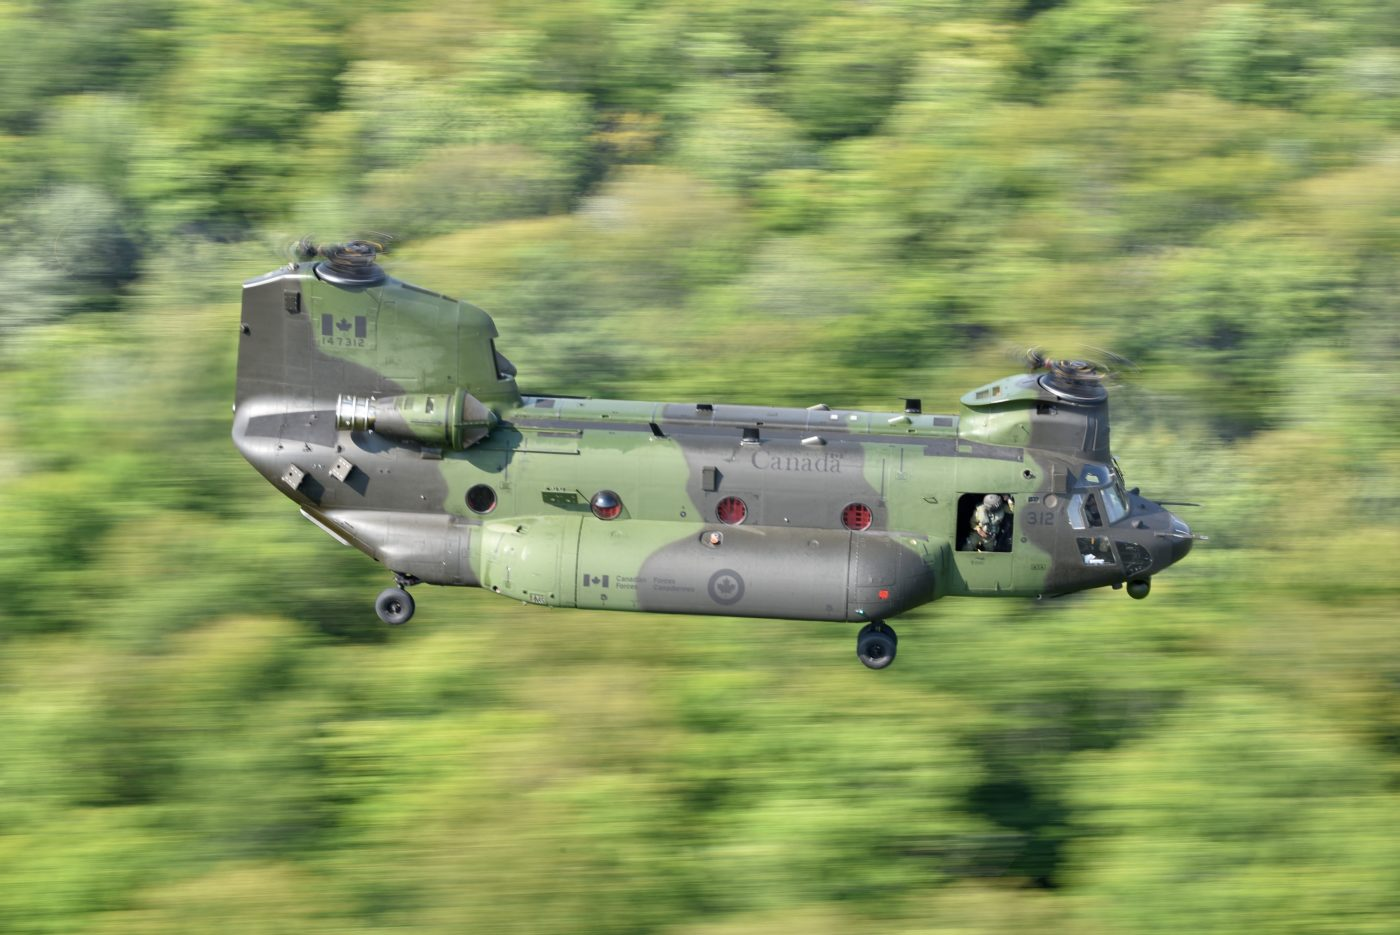 """Helicopters are always in high demand, and the ability to evacuate soldiers that have serious injuries quickly . . . is always going to be an in-demand capability. So this is just the continued evolution of the Chinook,"" said LCol Darryl Adams. Mike Reyno Photo"